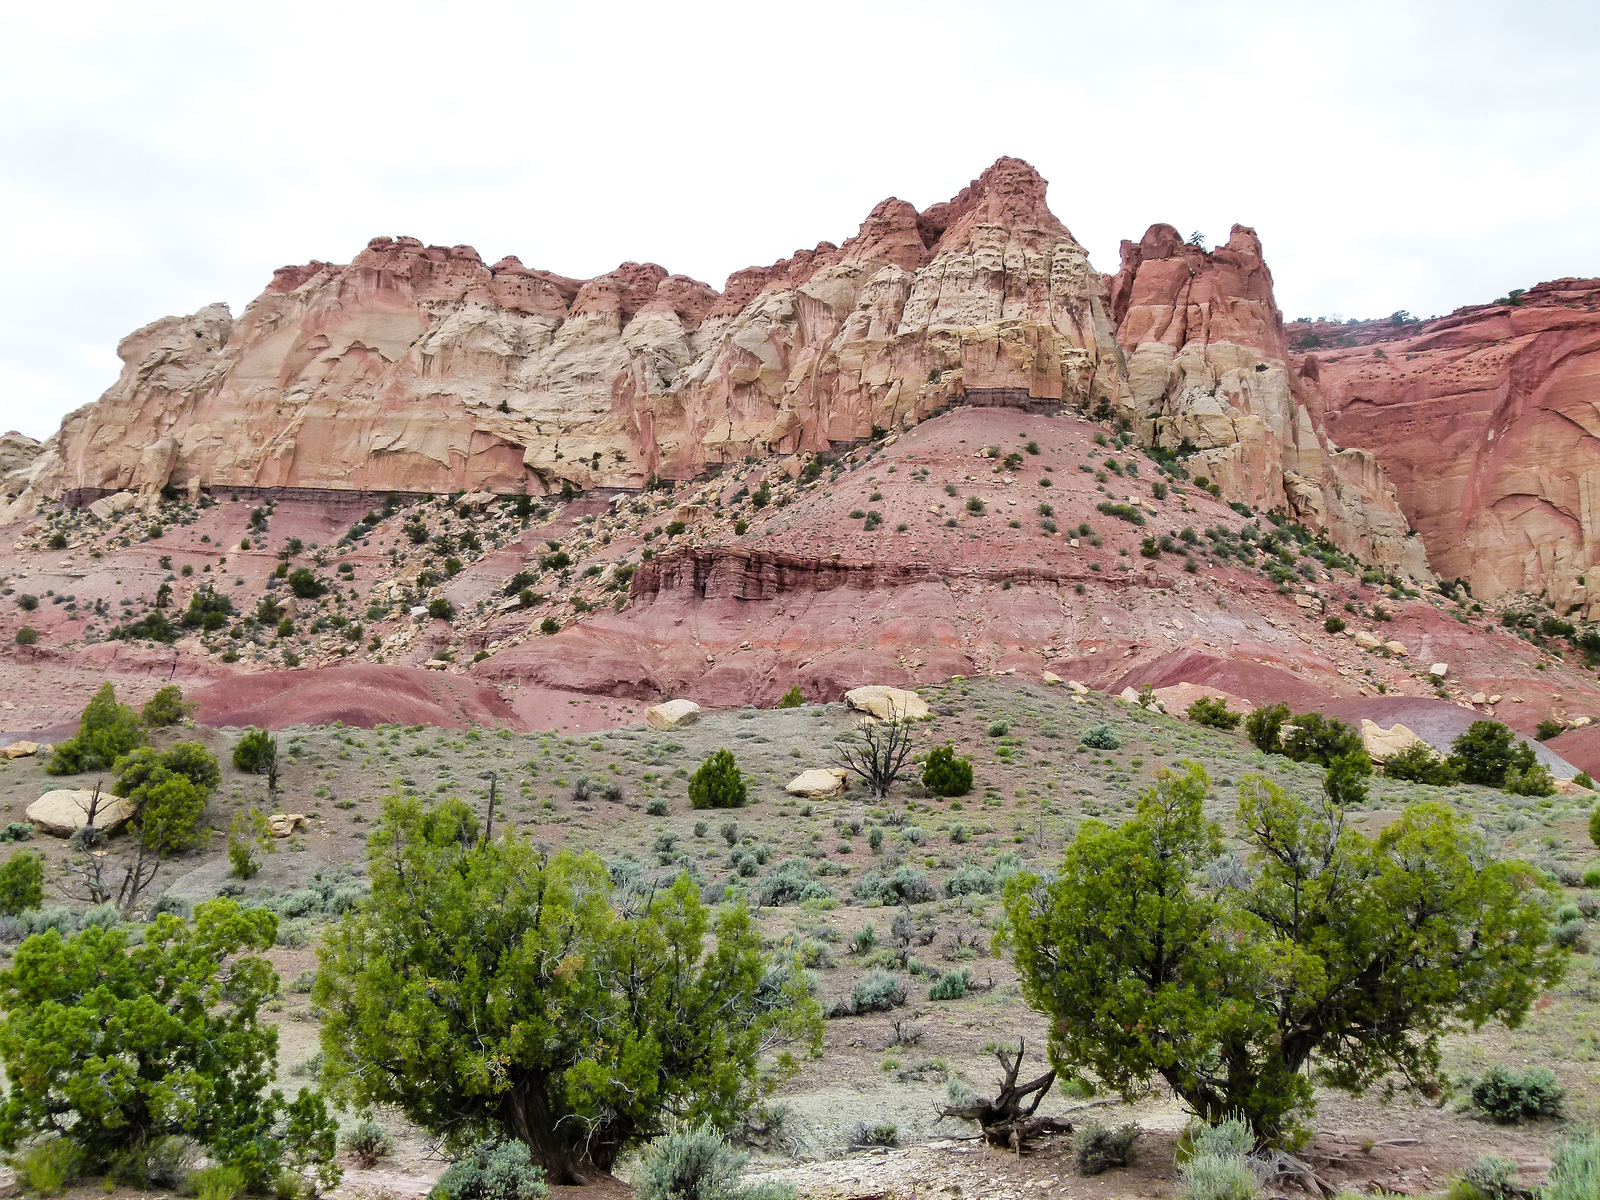 Explore the Burr Trail Scenic Byway when you drive Highway 12 Scenic Byway in southern Utah.